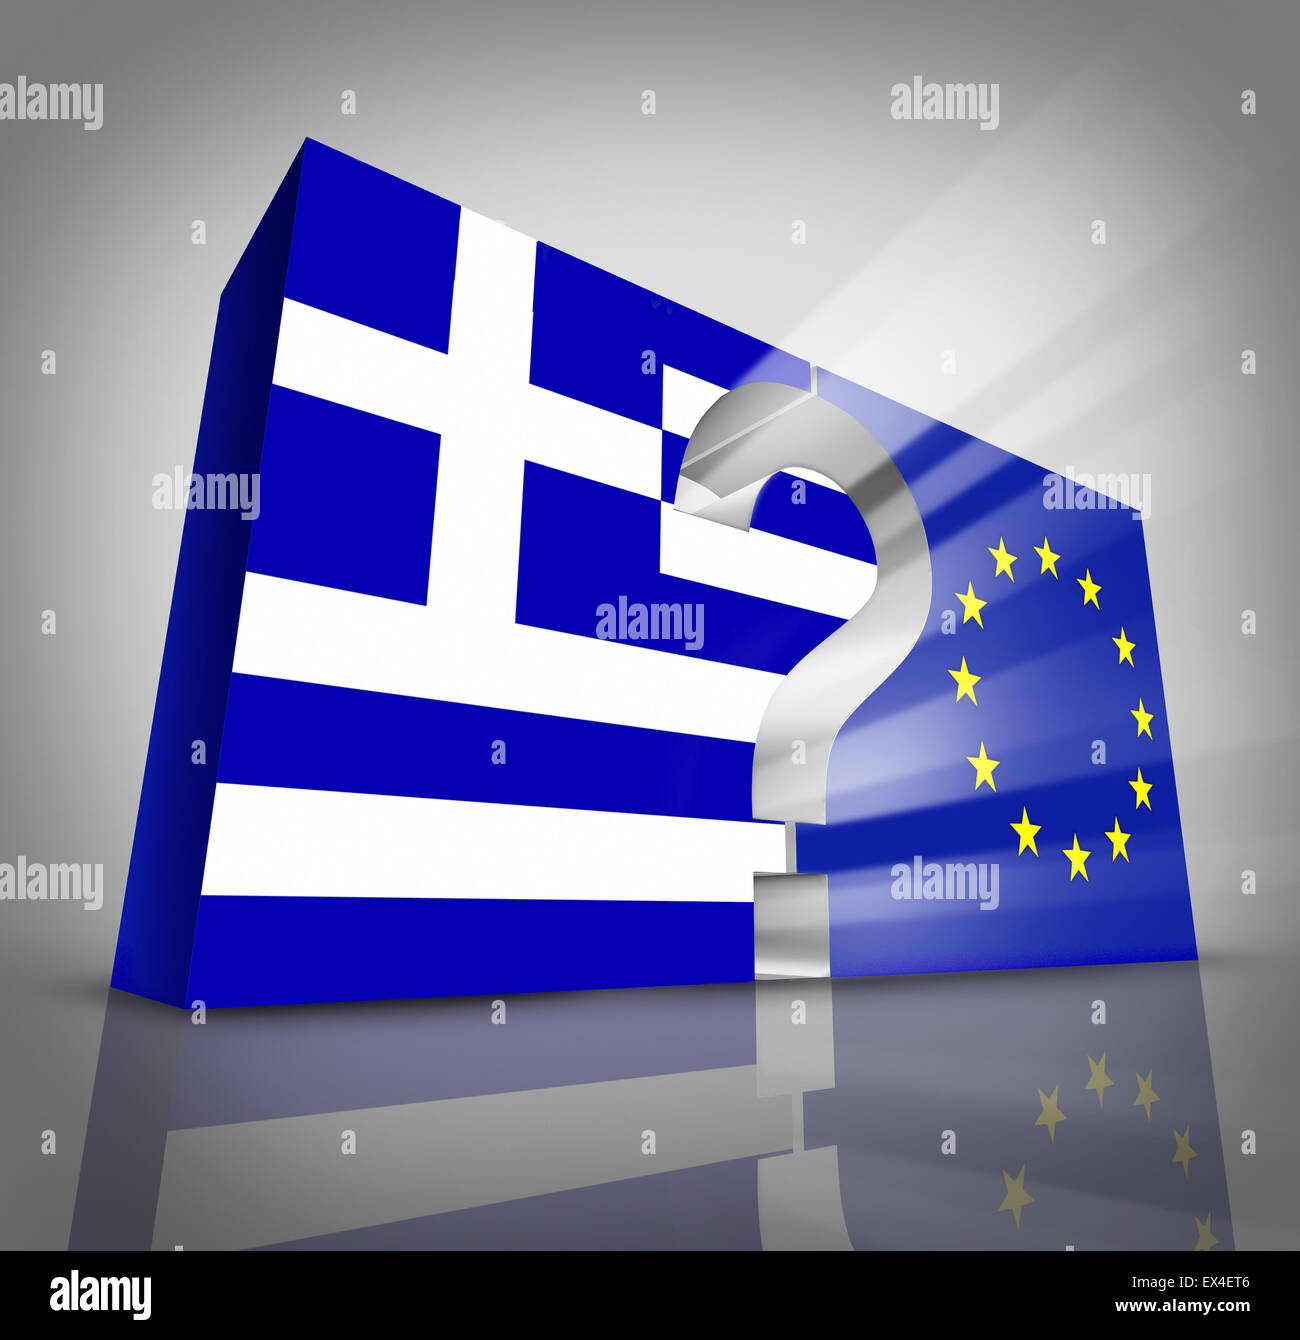 European Greece questions or Greek debt crisis and austerity management concept as a three dimensional blue and - Stock Image